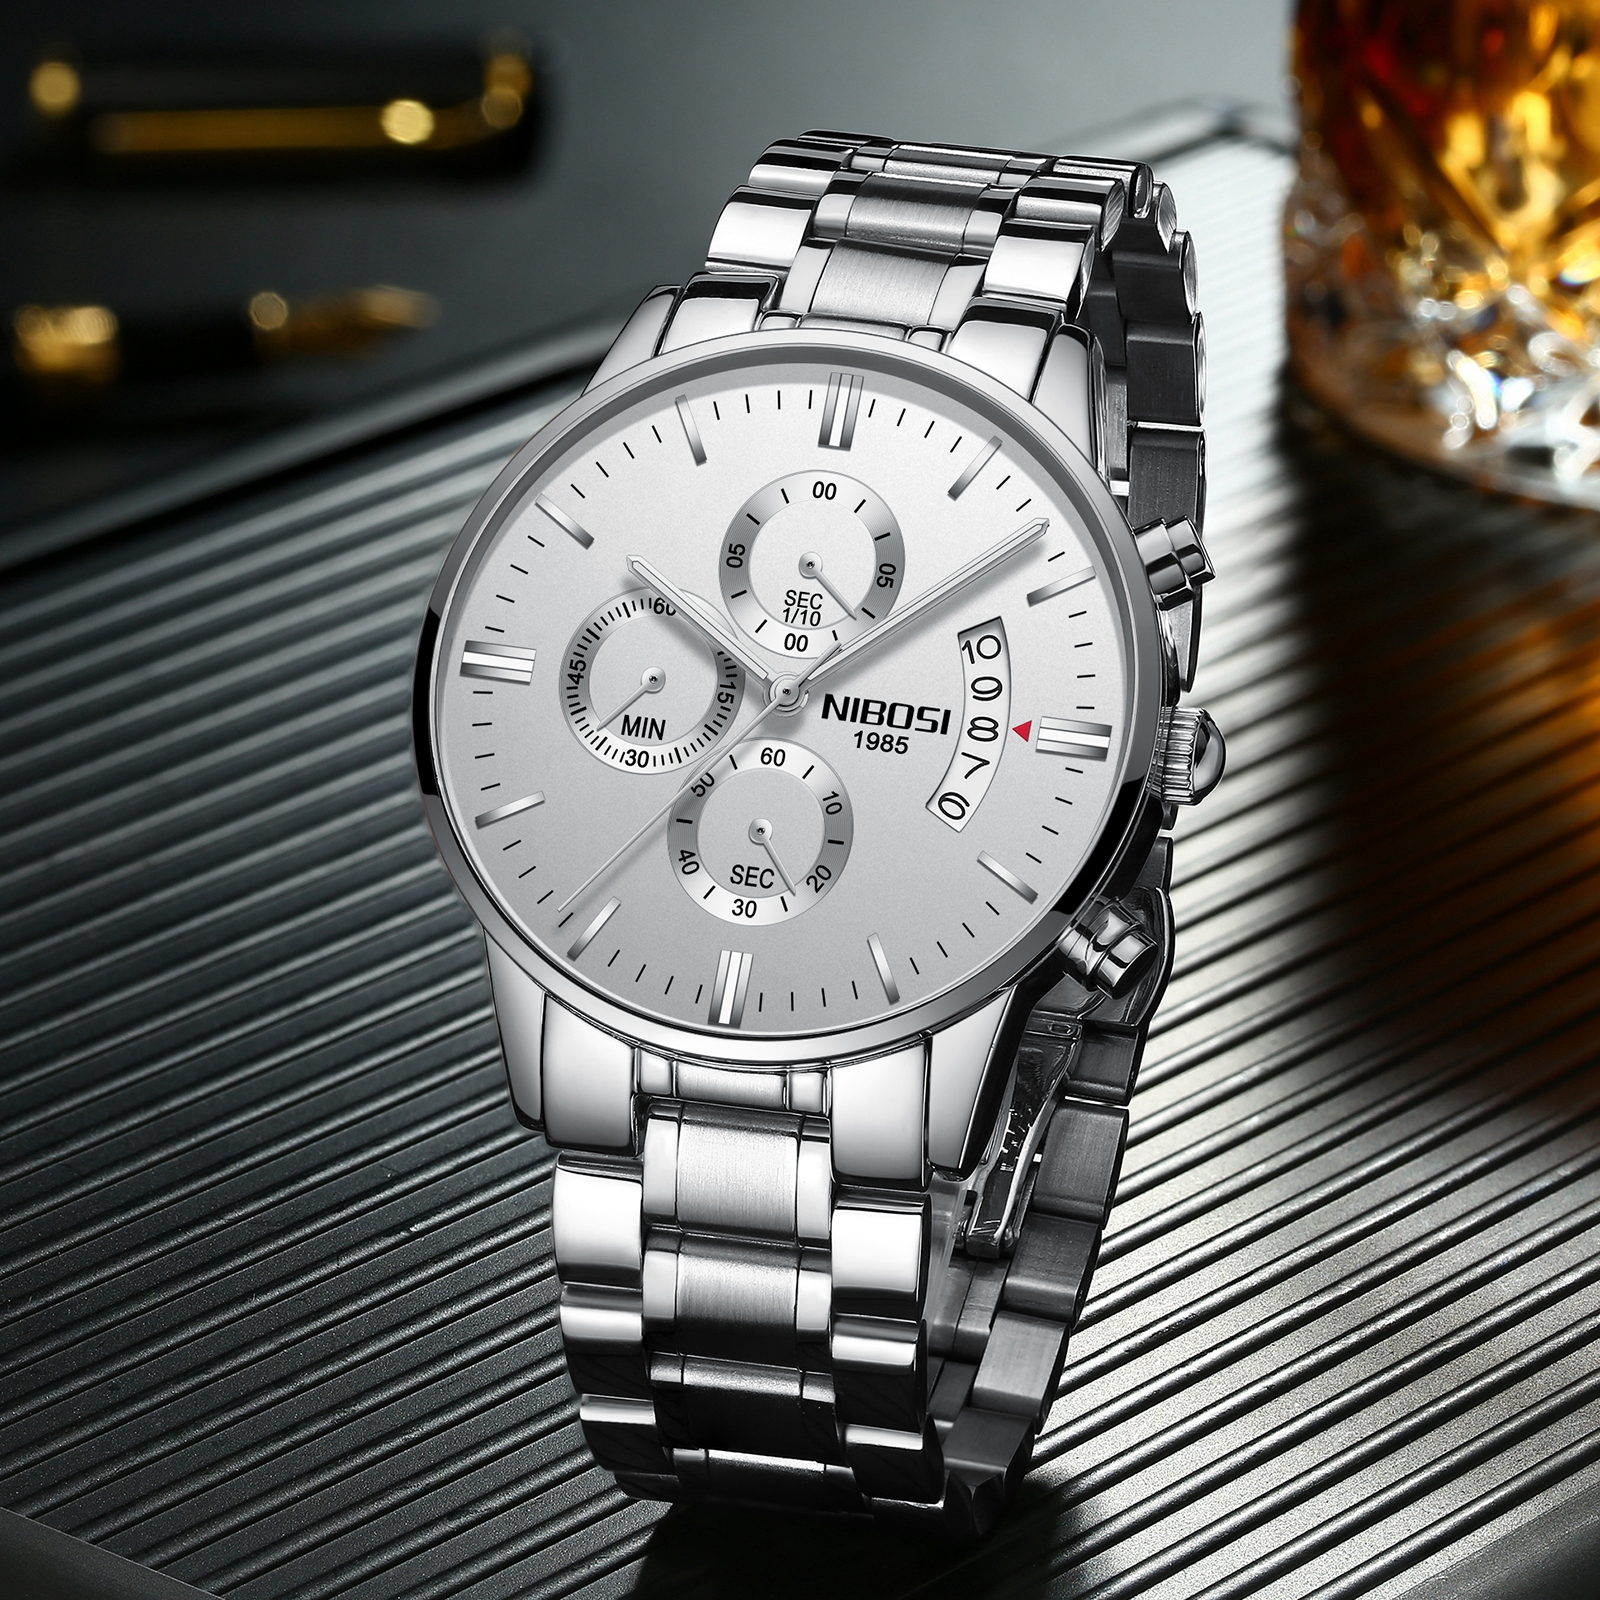 Image 3 - NIBOSI Relogio Masculino Men Watches Top Brand Luxury Famous Men's Fashion Casual Dress Watch Military Quartz Wristwatches Saat-in Quartz Watches from Watches